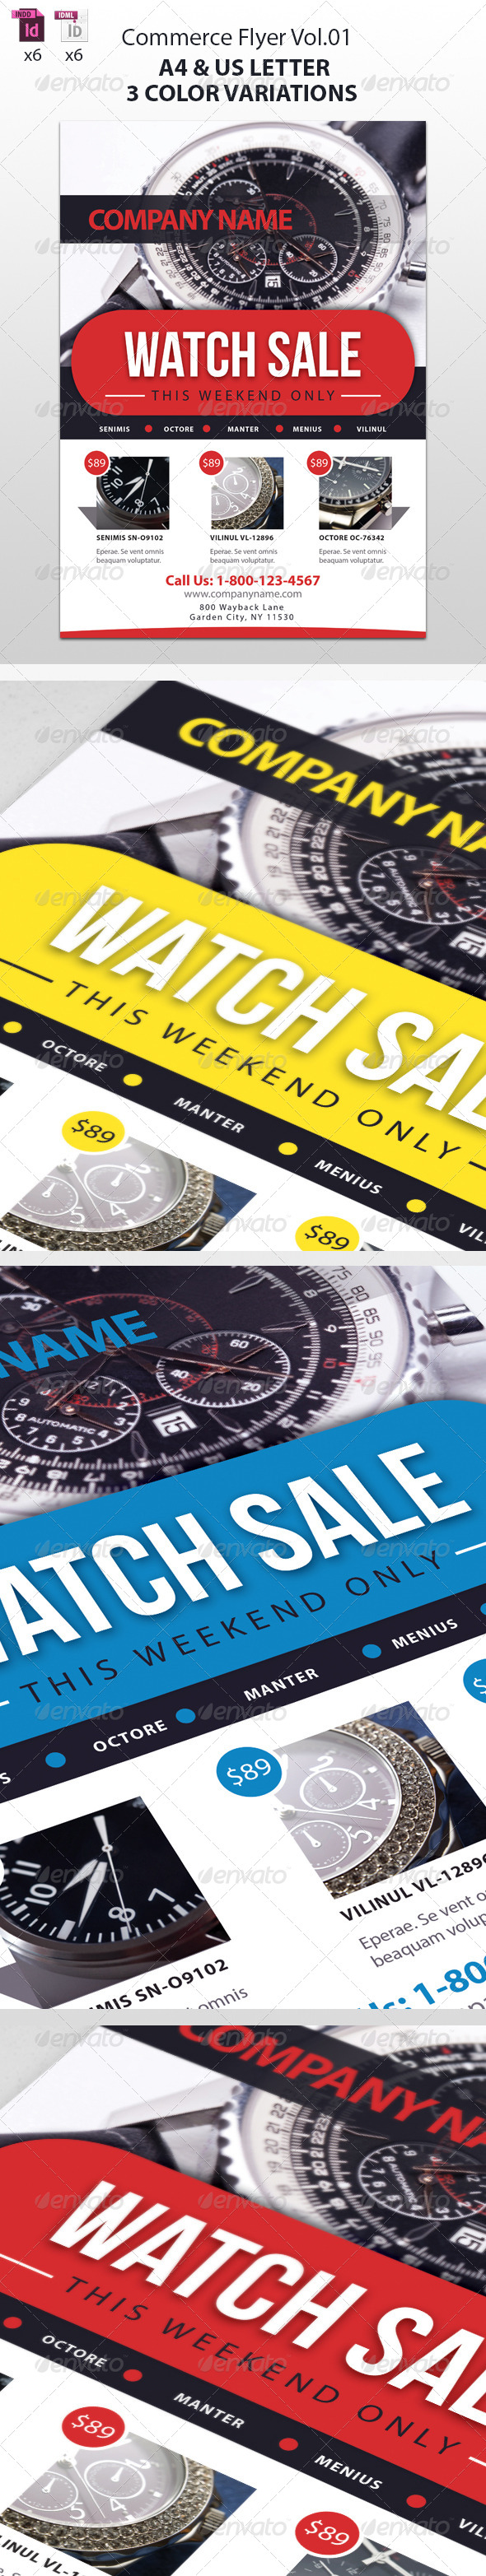 GraphicRiver Commerce Flyer Vol 01 5160968